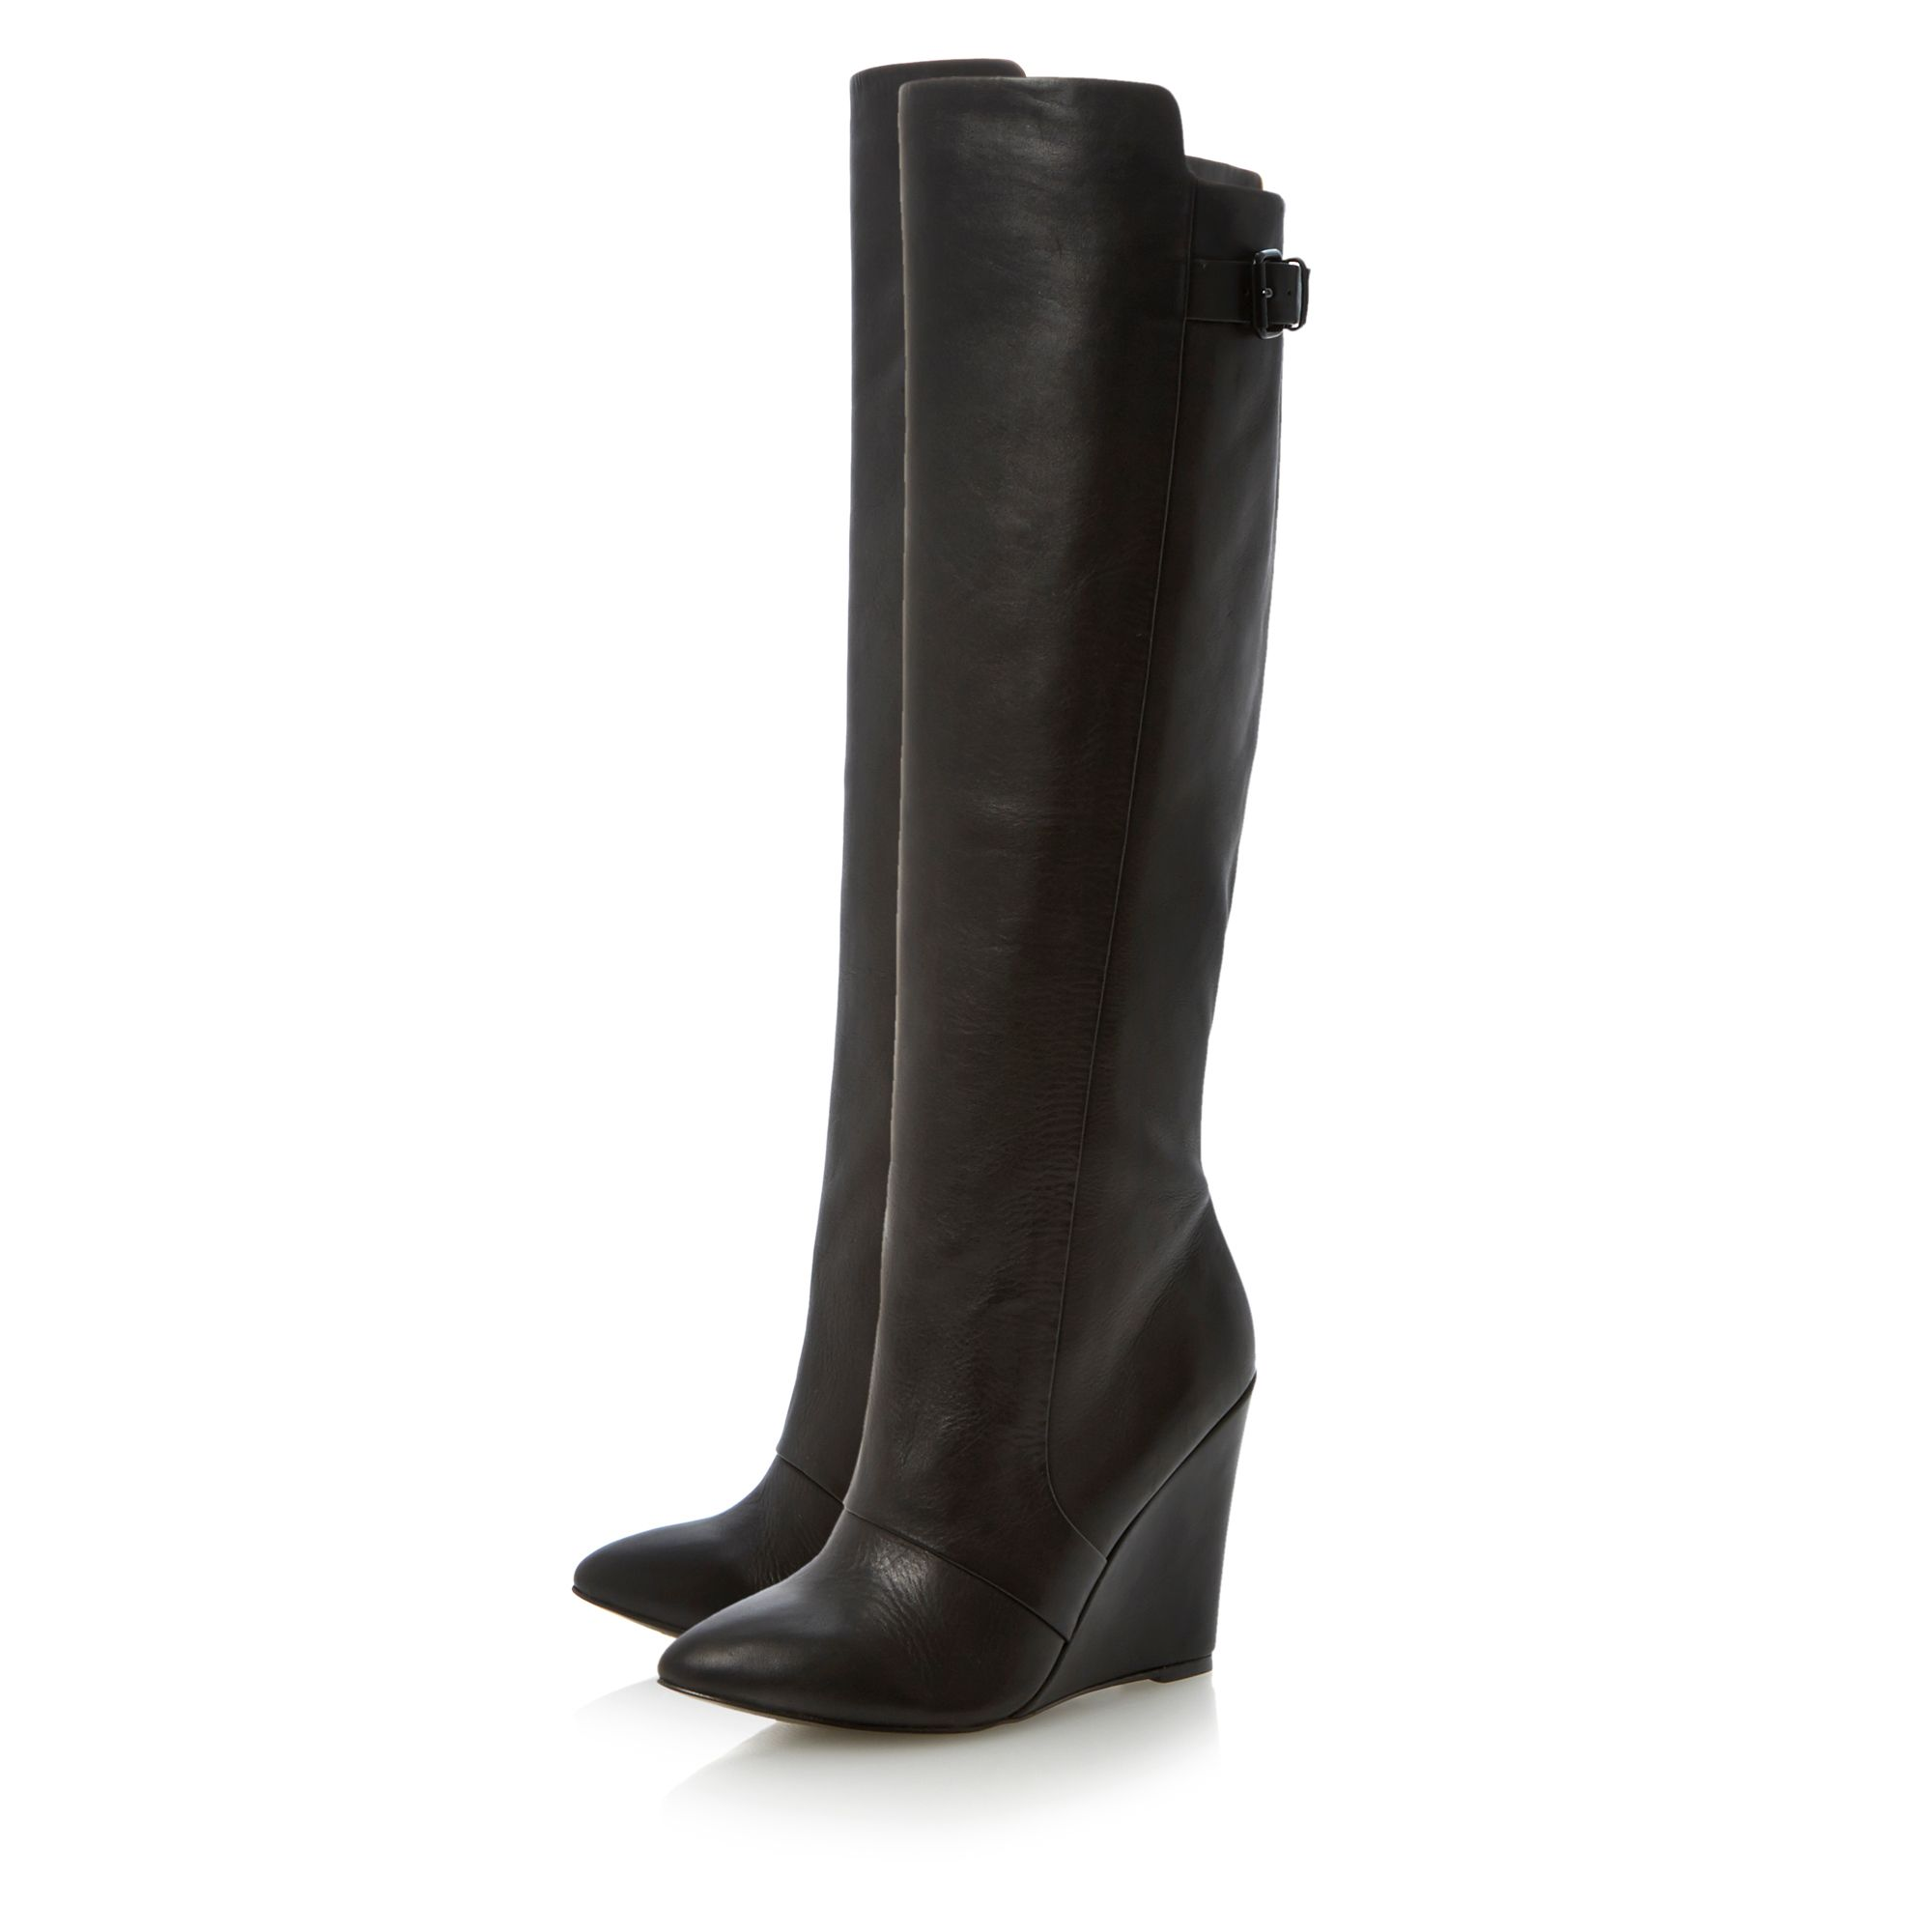 Zylon high leg point wedge boots